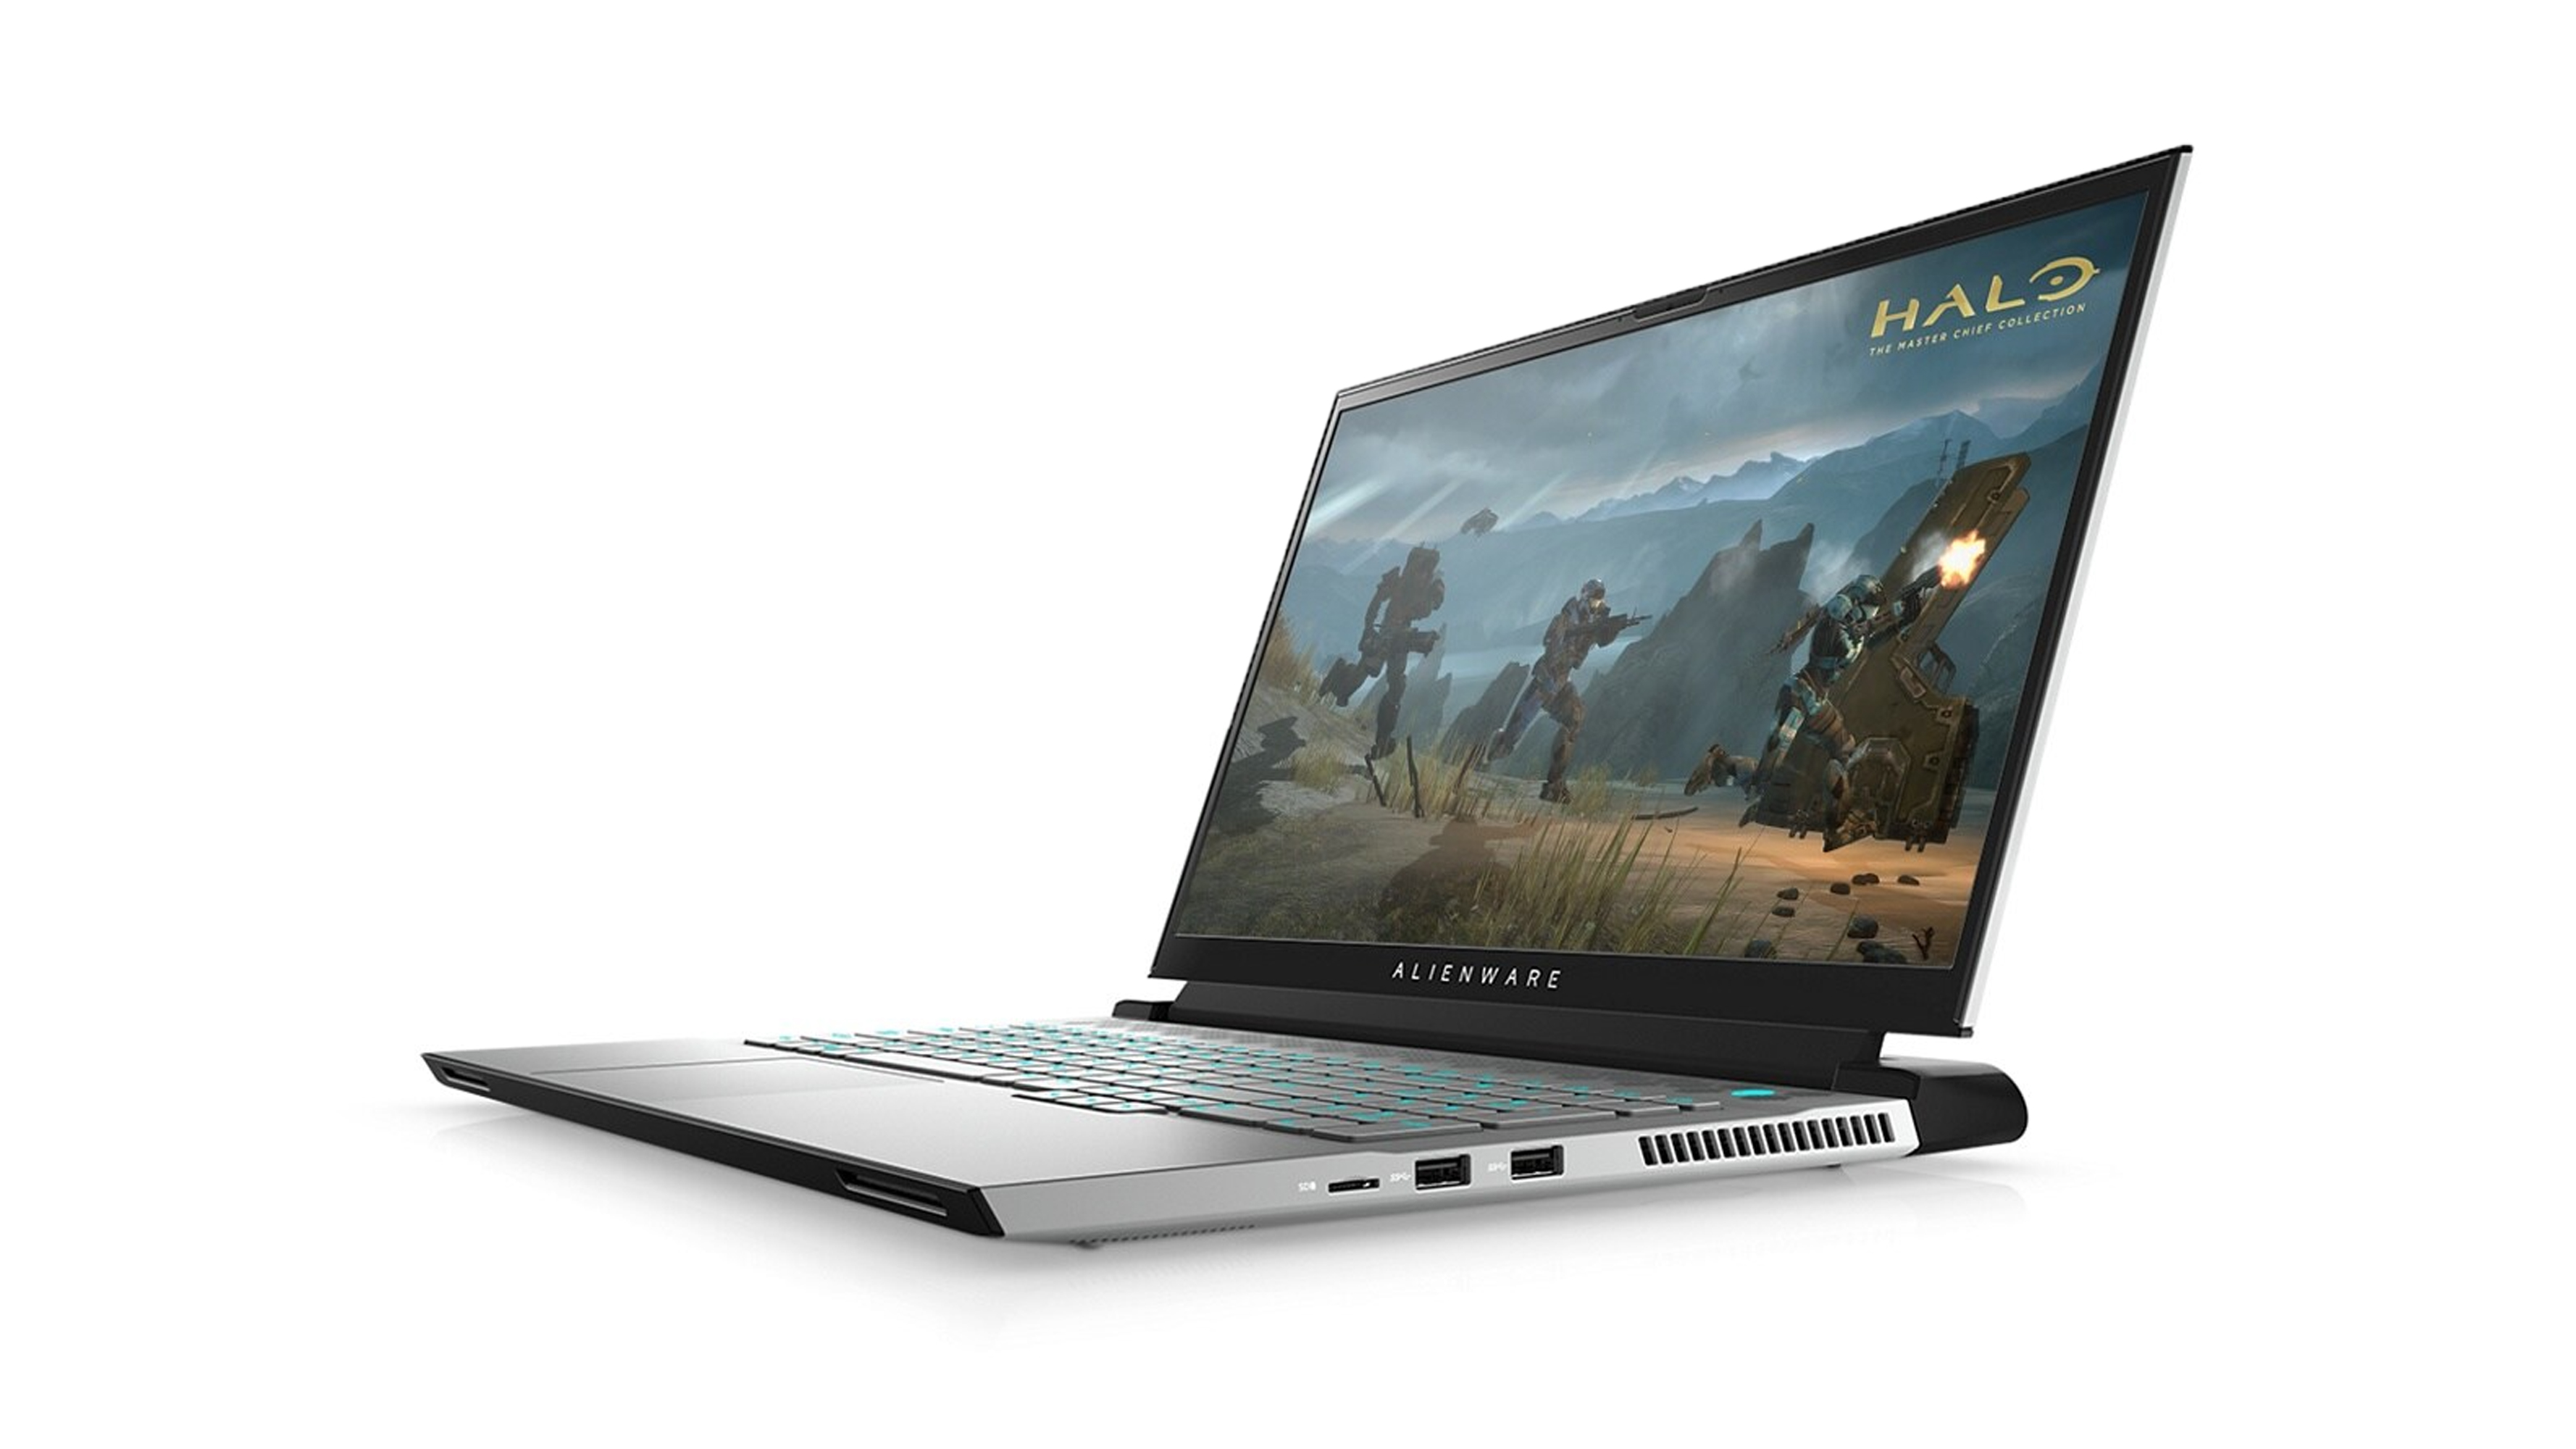 Alienware m17 R4 at an angle on a white background. The gaming laptop is open, with a screenshot of Halo: The Master Chief Collection. You can see the right-side ports, along with some ventilation.